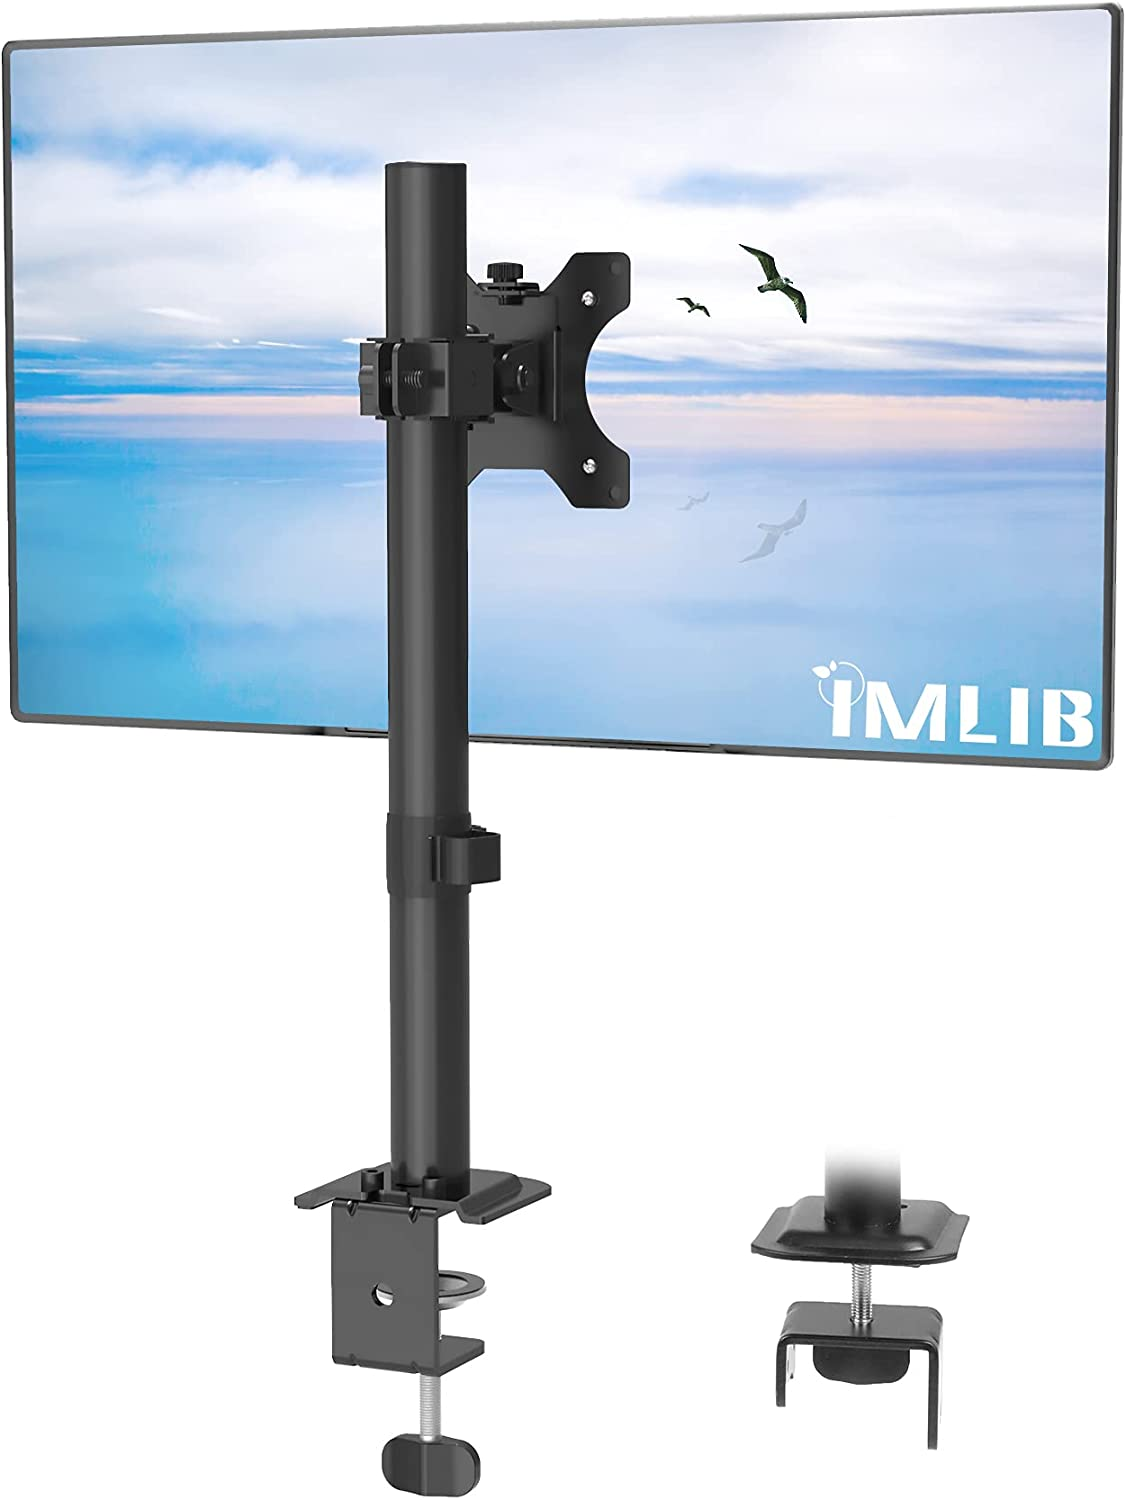 IMLIB Single Monitor Mount, LCD/LED Computer Monitor Stand for 13 to 32 inch Screens, Height Adjustable VESA Bracket with Clamp, Grommet Mounting Base, Hold up to 17.6lbs